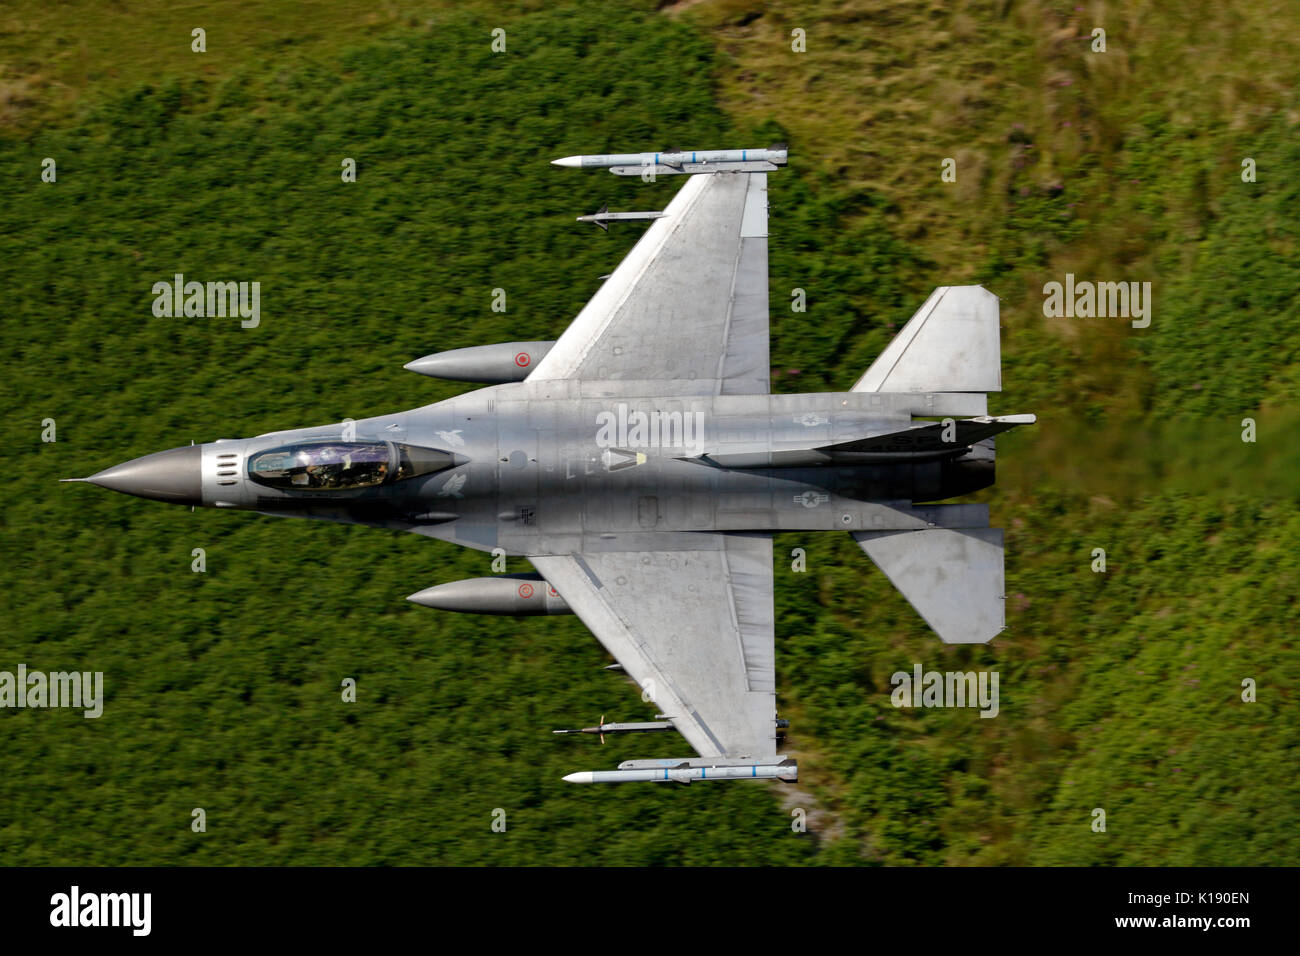 General Dynamics F-16C Fighting Falcon, 480th FS, 52nd FW, USAF based at Spangdahlem in Germany, conducting Low-level flight training in LFA7 Wales - Stock Image